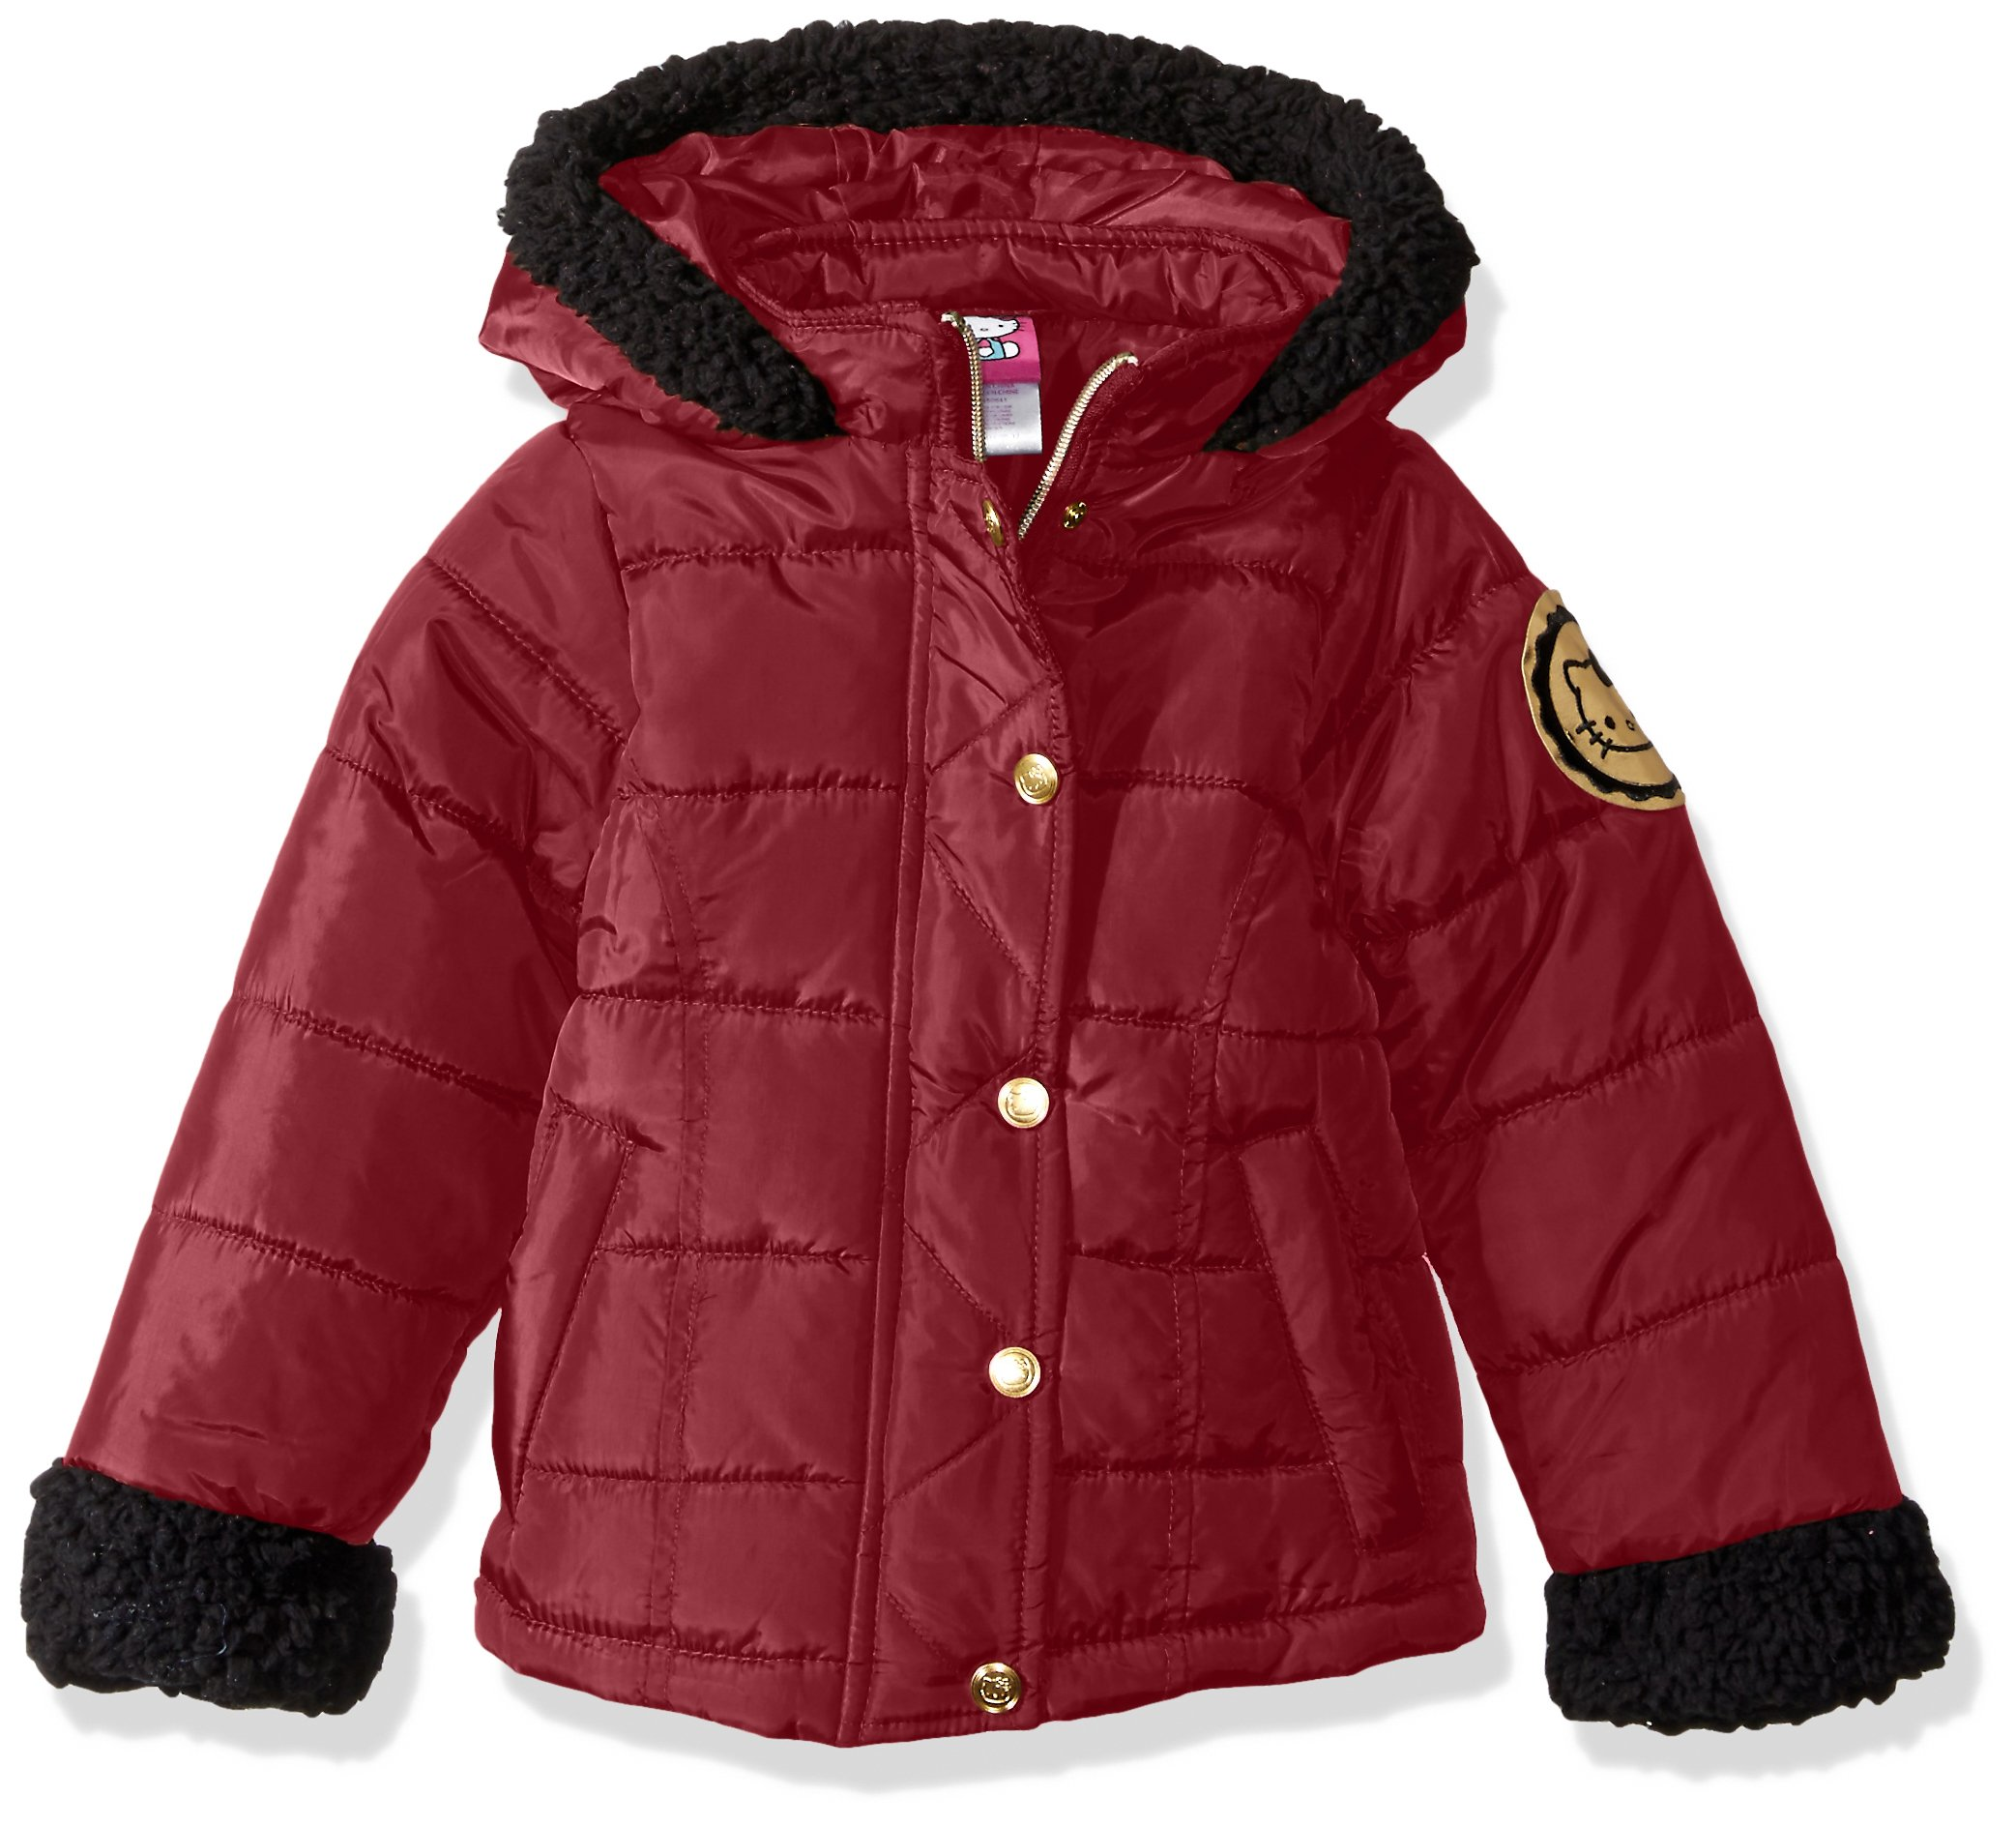 Hello Kitty Big Girls' Puffer Jacket with Sherpa Trim Hood and Sleeves, Red, 7